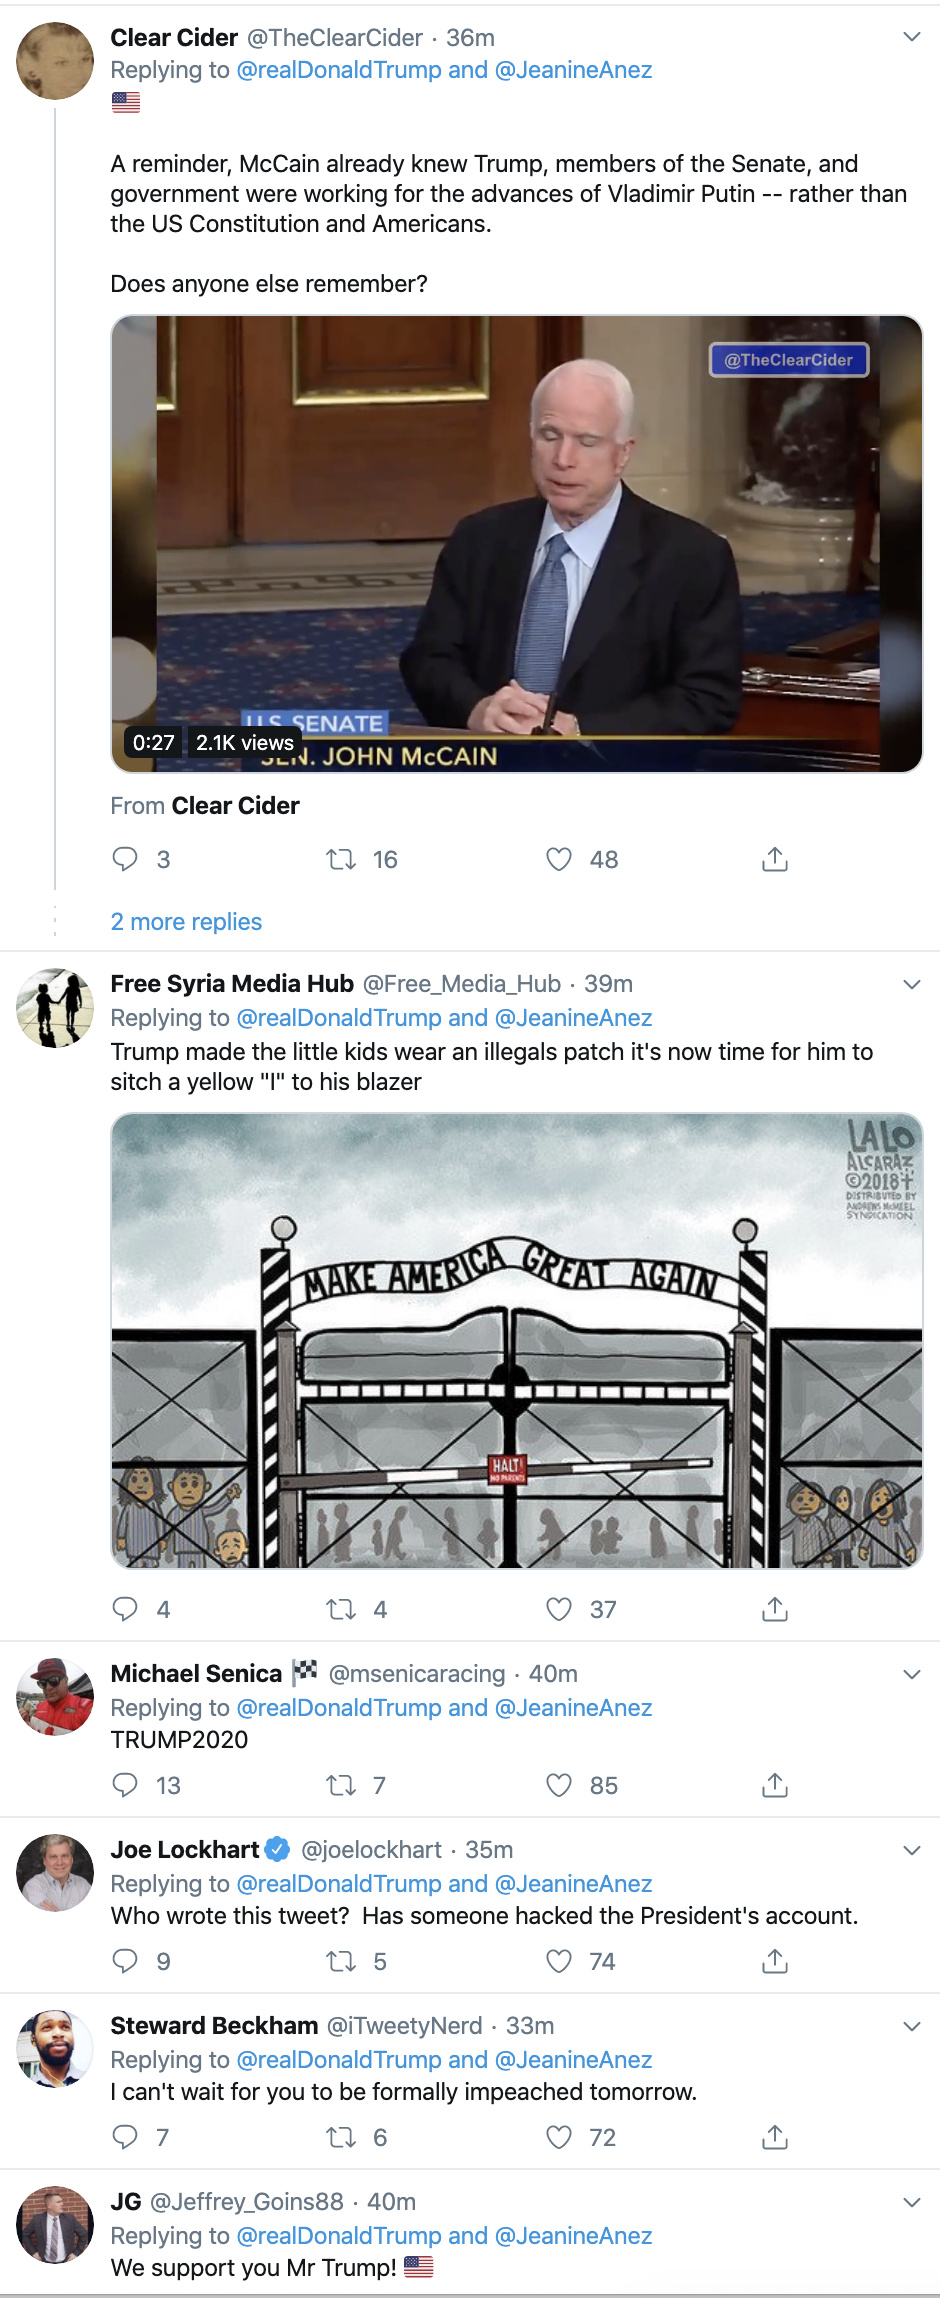 Screen-Shot-2019-12-17-at-1.50.47-PM Trump Goes Twitter Crazy Over Impeachment Tuesday Featured Foreign Policy Human Rights Politics Top Stories